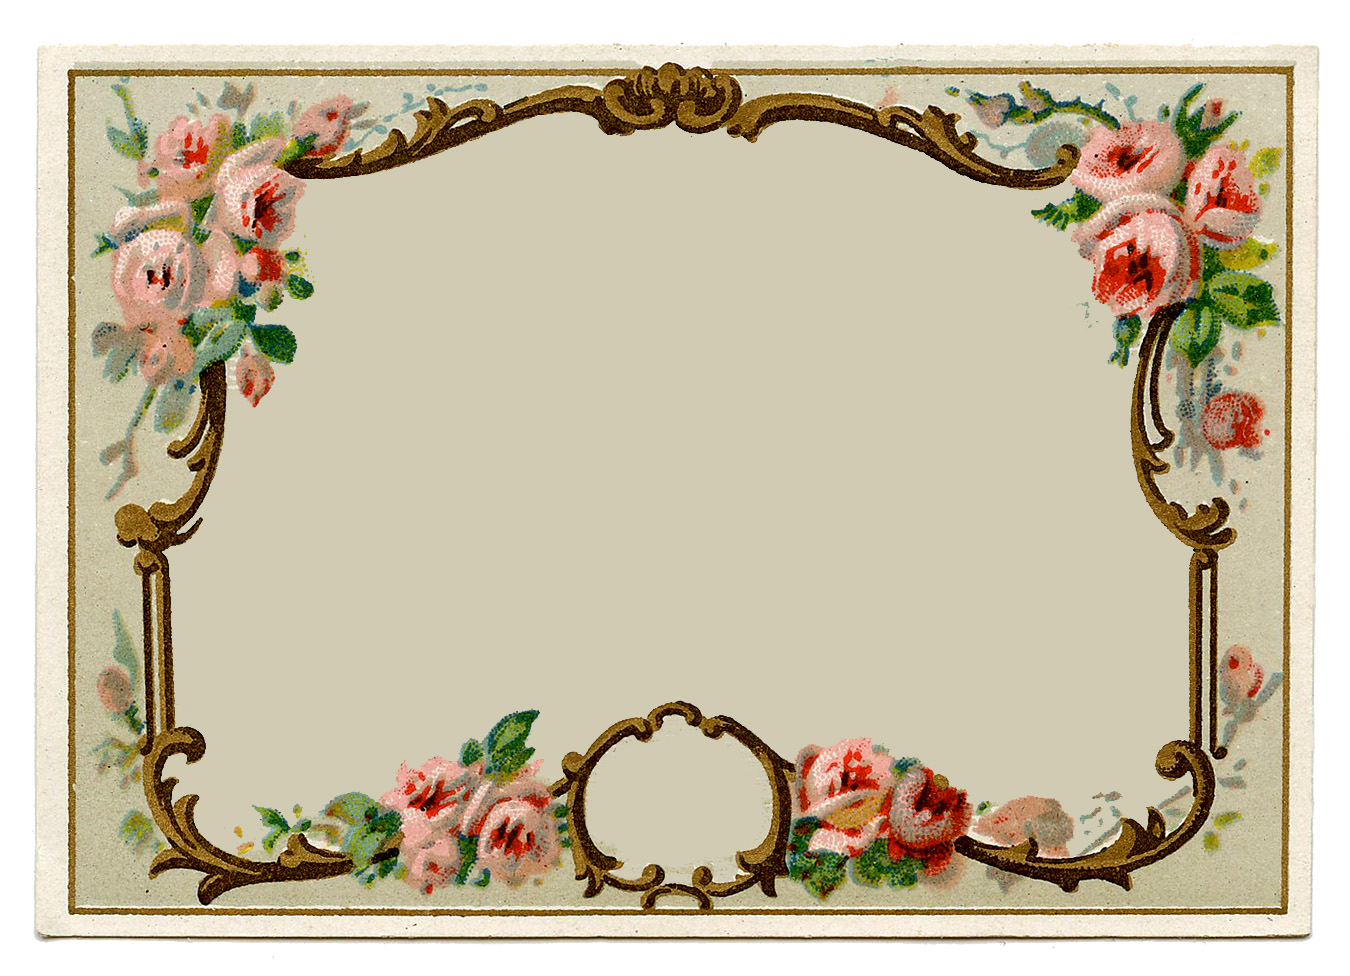 Free Download Vintage Frame Border Clipart Call Victorian Hd Wallpaper